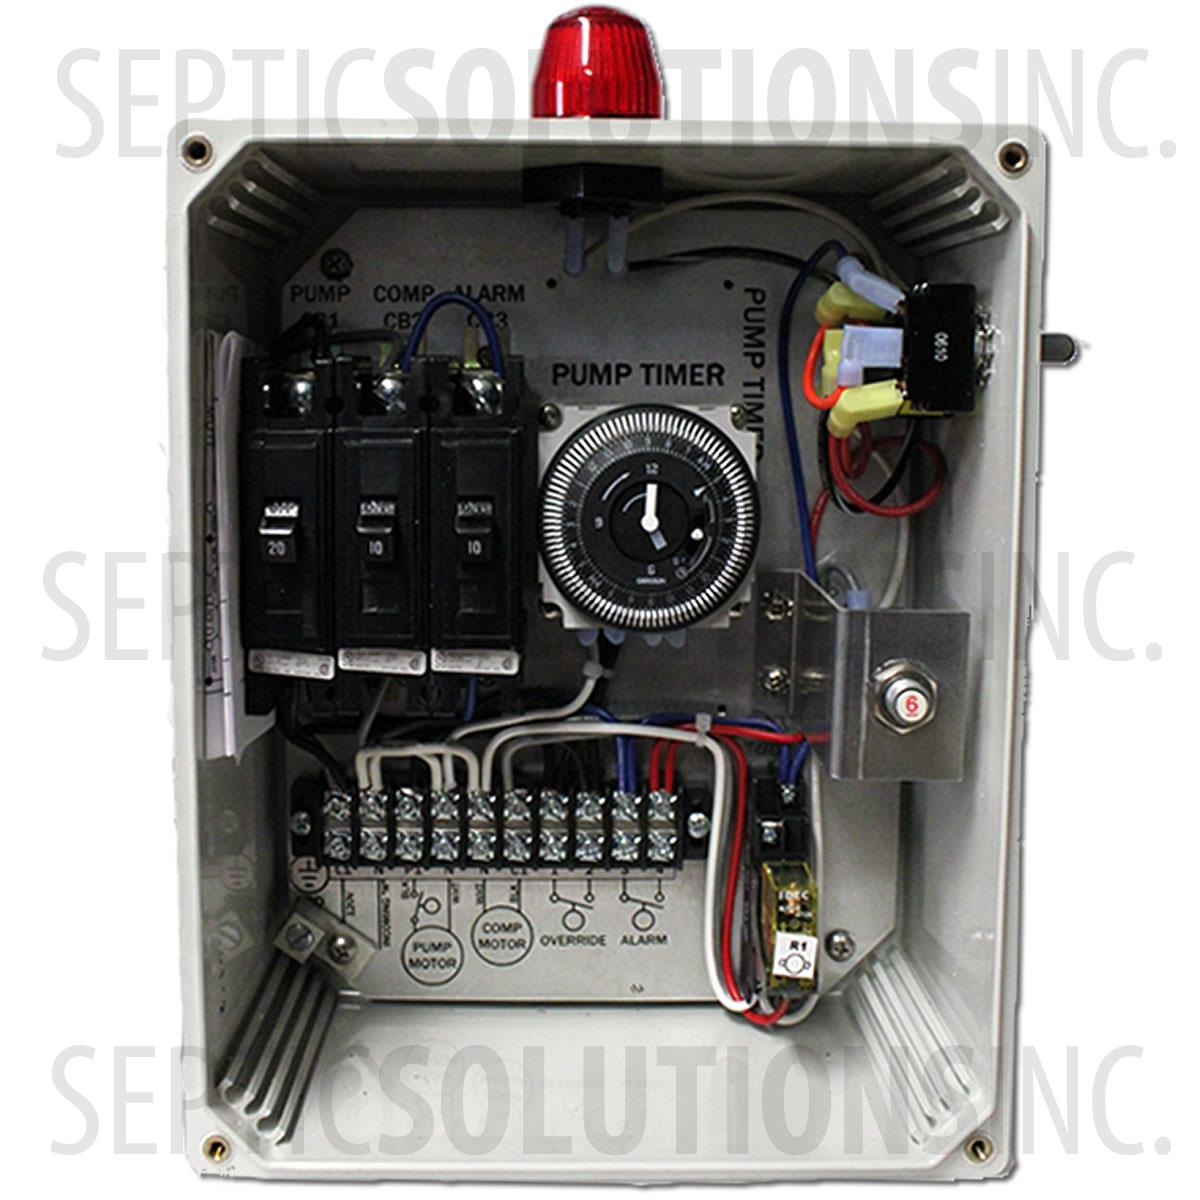 septic pump alarm wiring diagram 1997 honda fuse box high water tank get